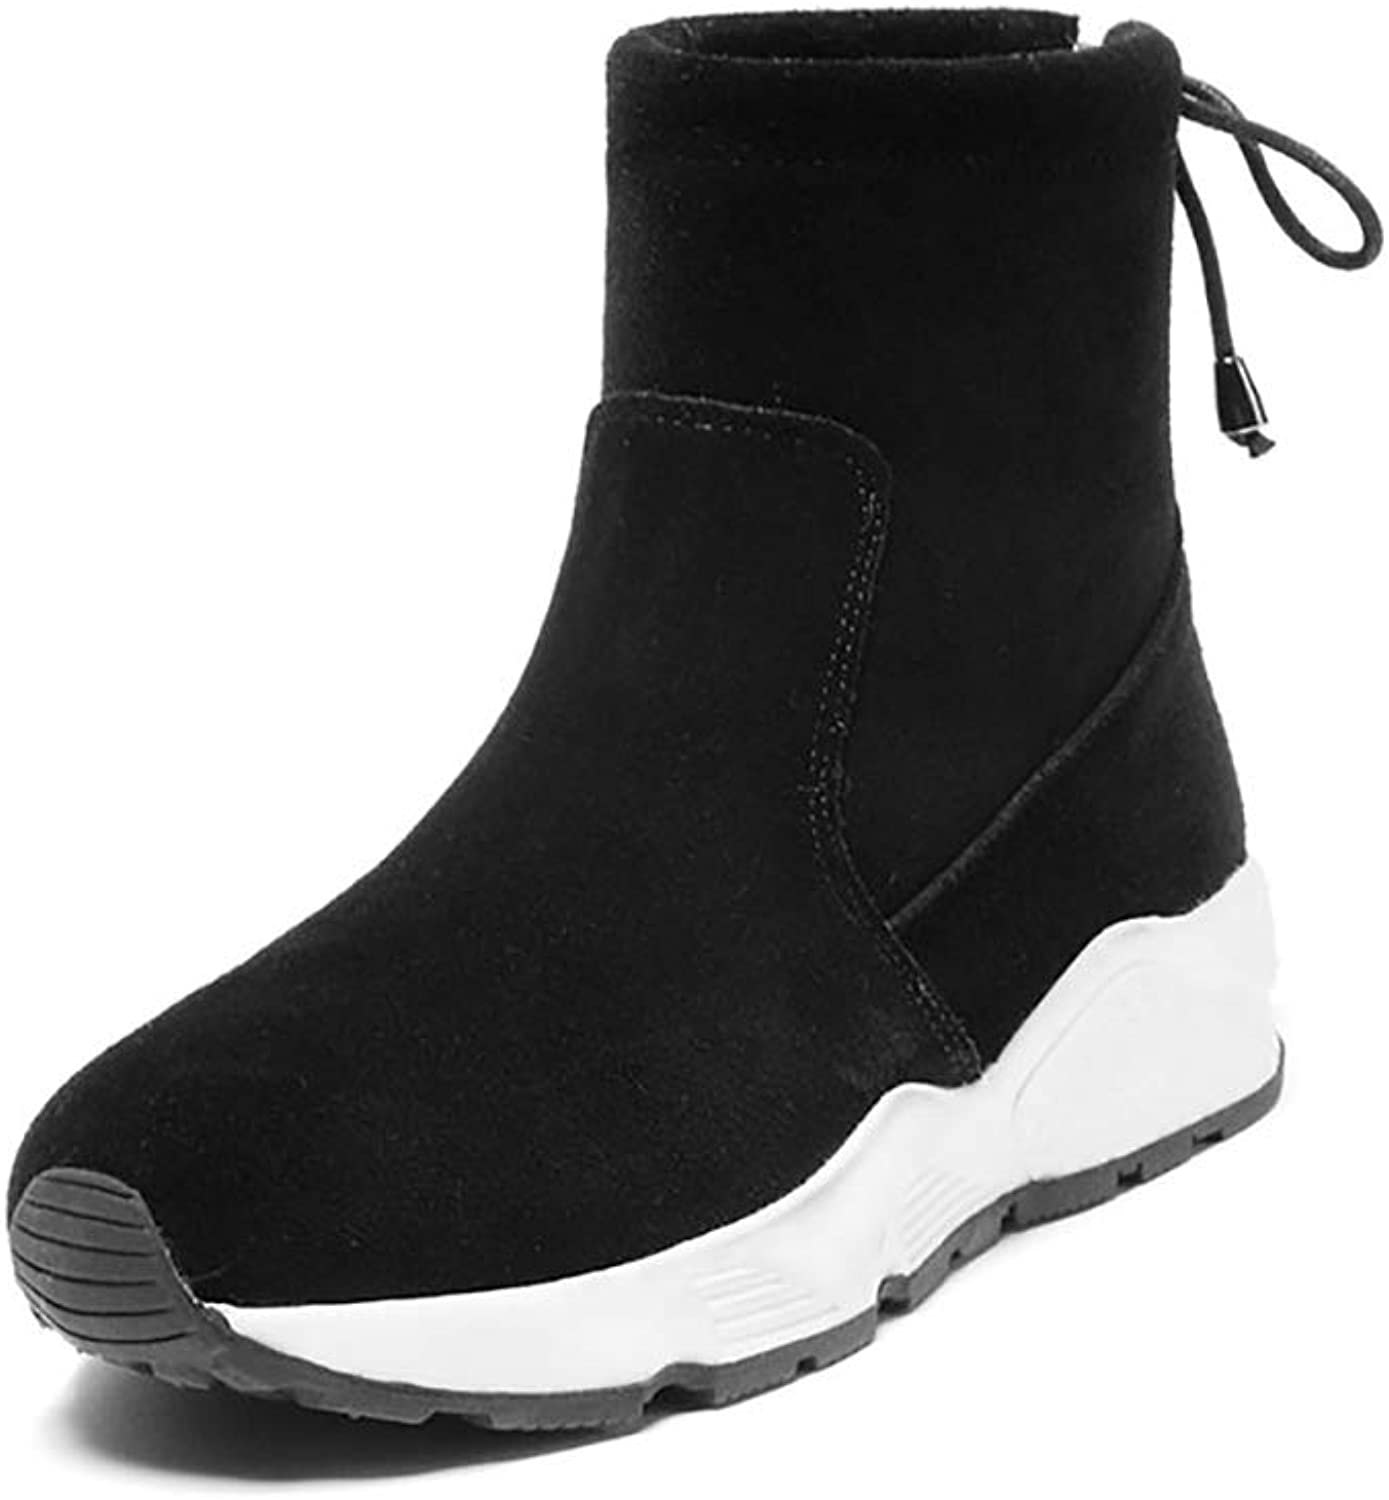 YUBIN Winter Plus Velvet Snow Boots, Sports and Leisure Non-Slip Female Snow Boots, color, Size and Variety of Choices (color   Black, Size   EU 40 US 7.5 UK 6.5 JP 25cm)